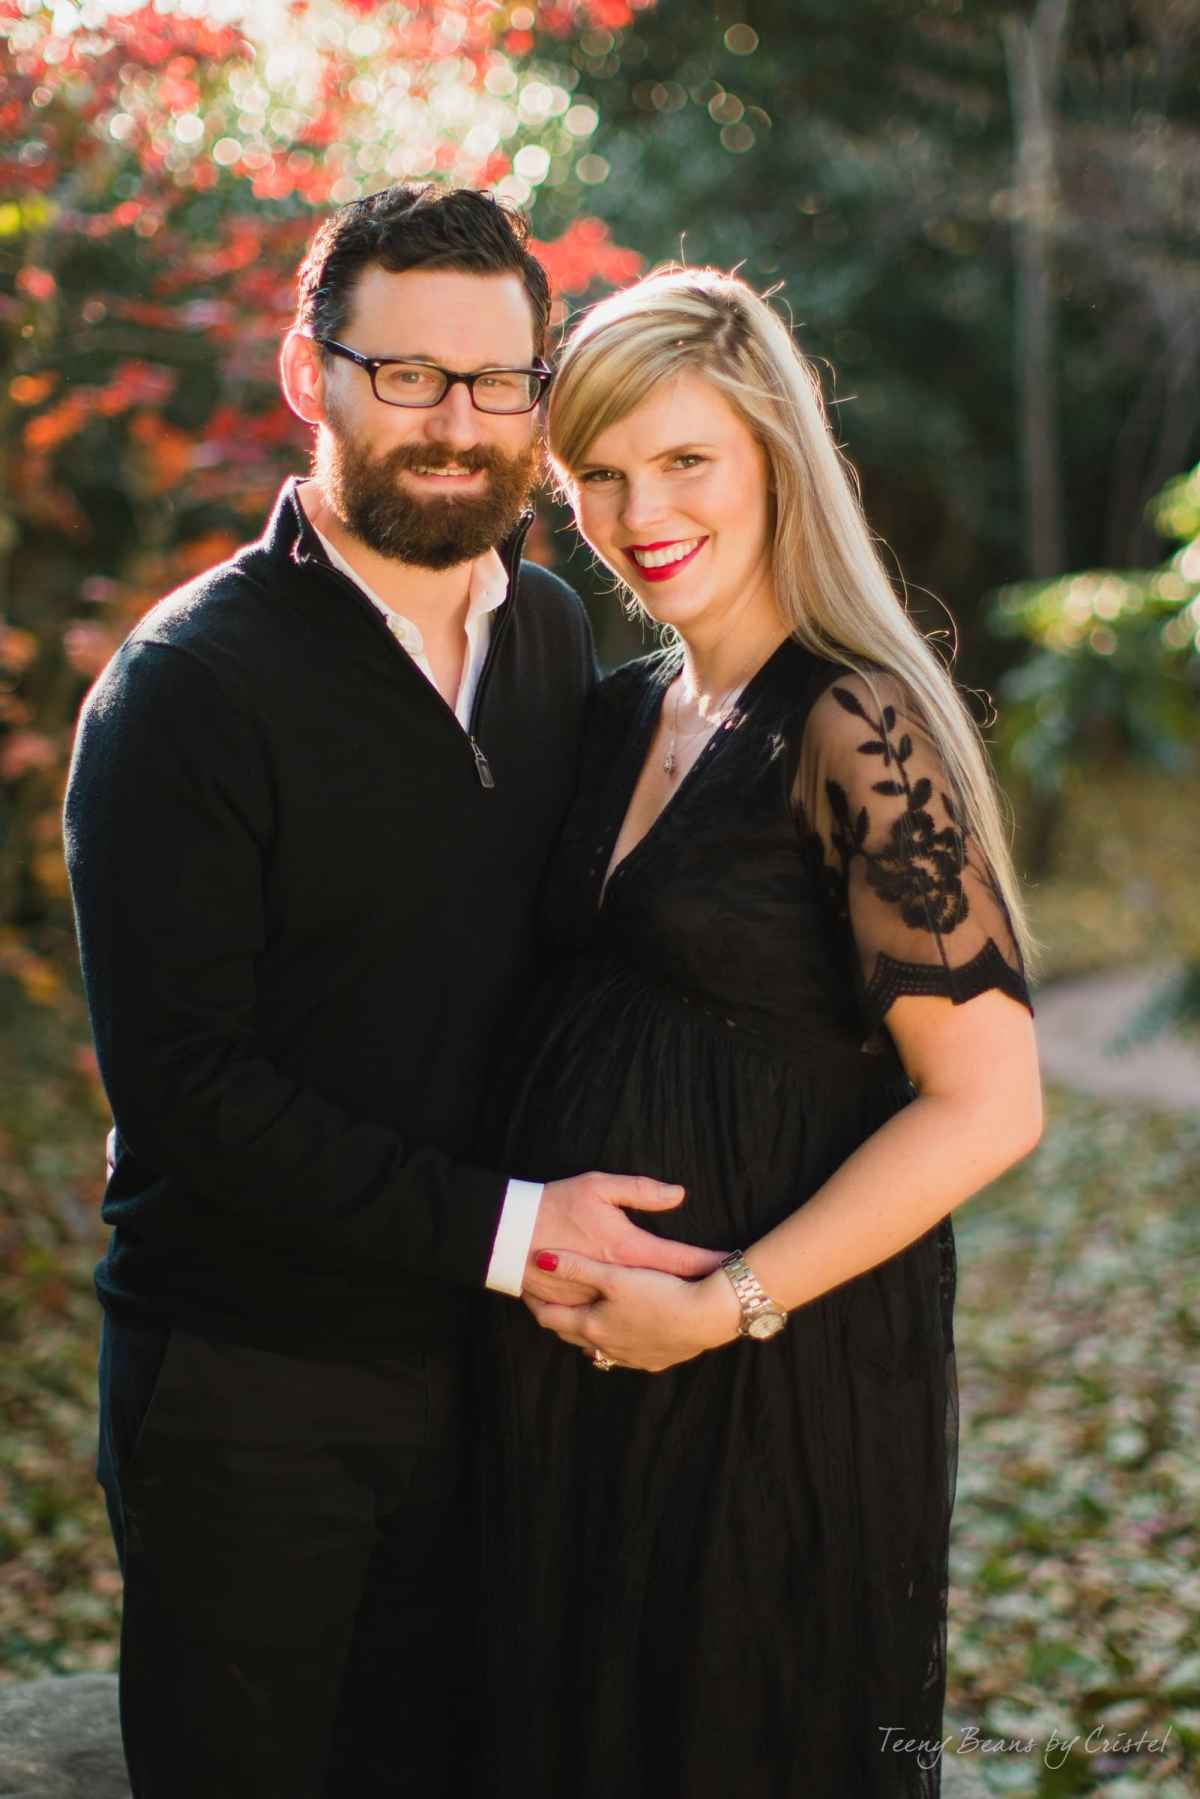 jackie-9 raleigh maternity photographer - jackie's maternity session